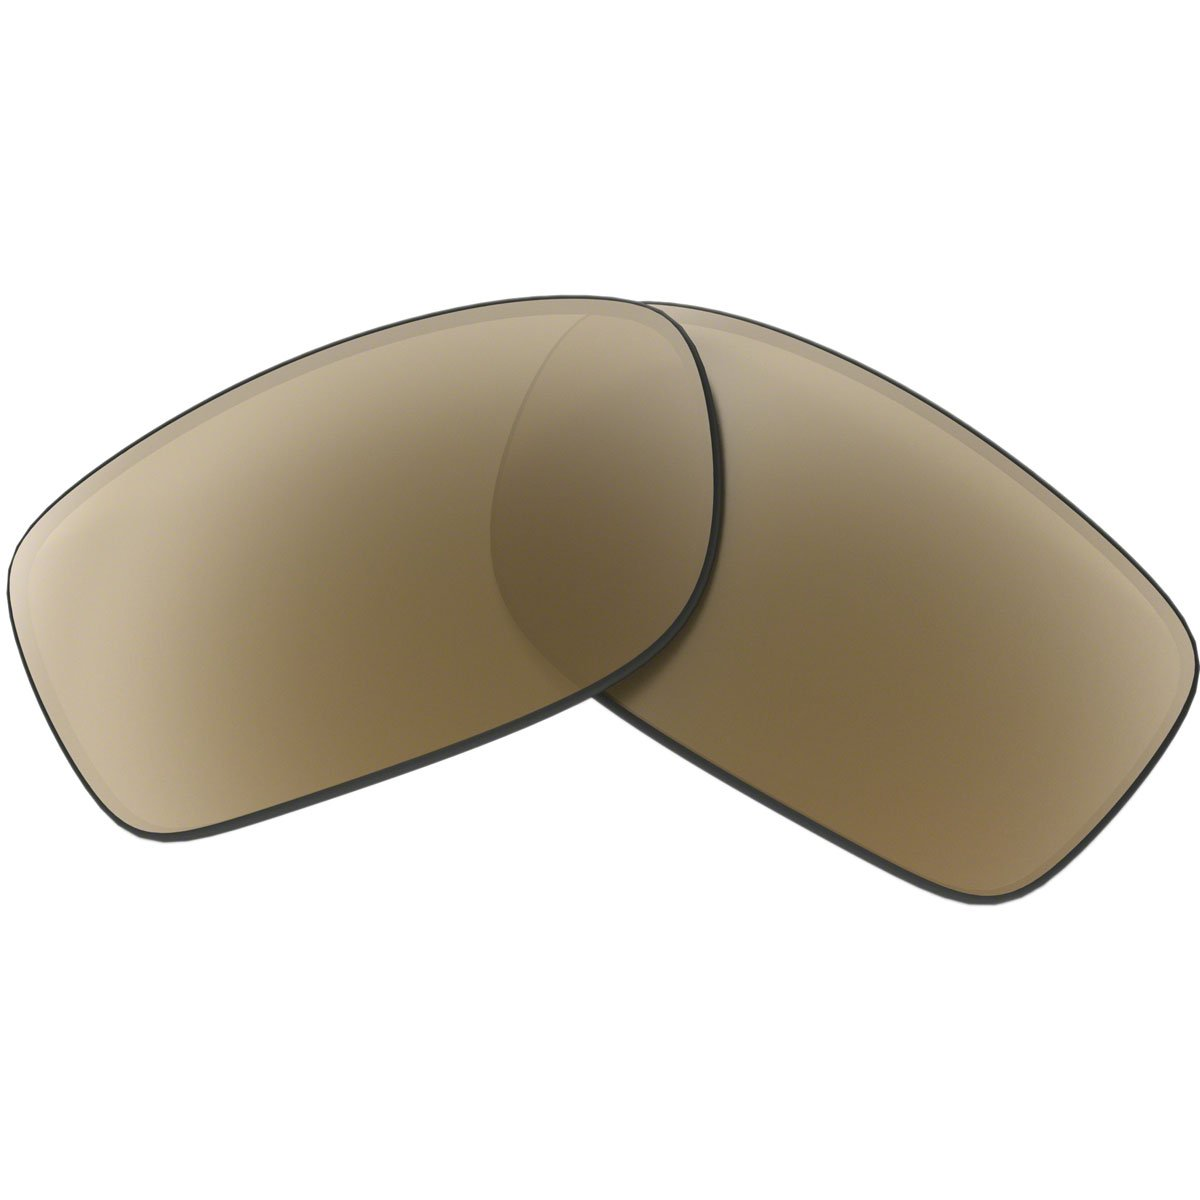 Oakley Fives Squared/Fives 3.0 Men's Active Replacement Lens Lifestyle Sunglass Accessories - Bronze Polarized / One Size by Oakley